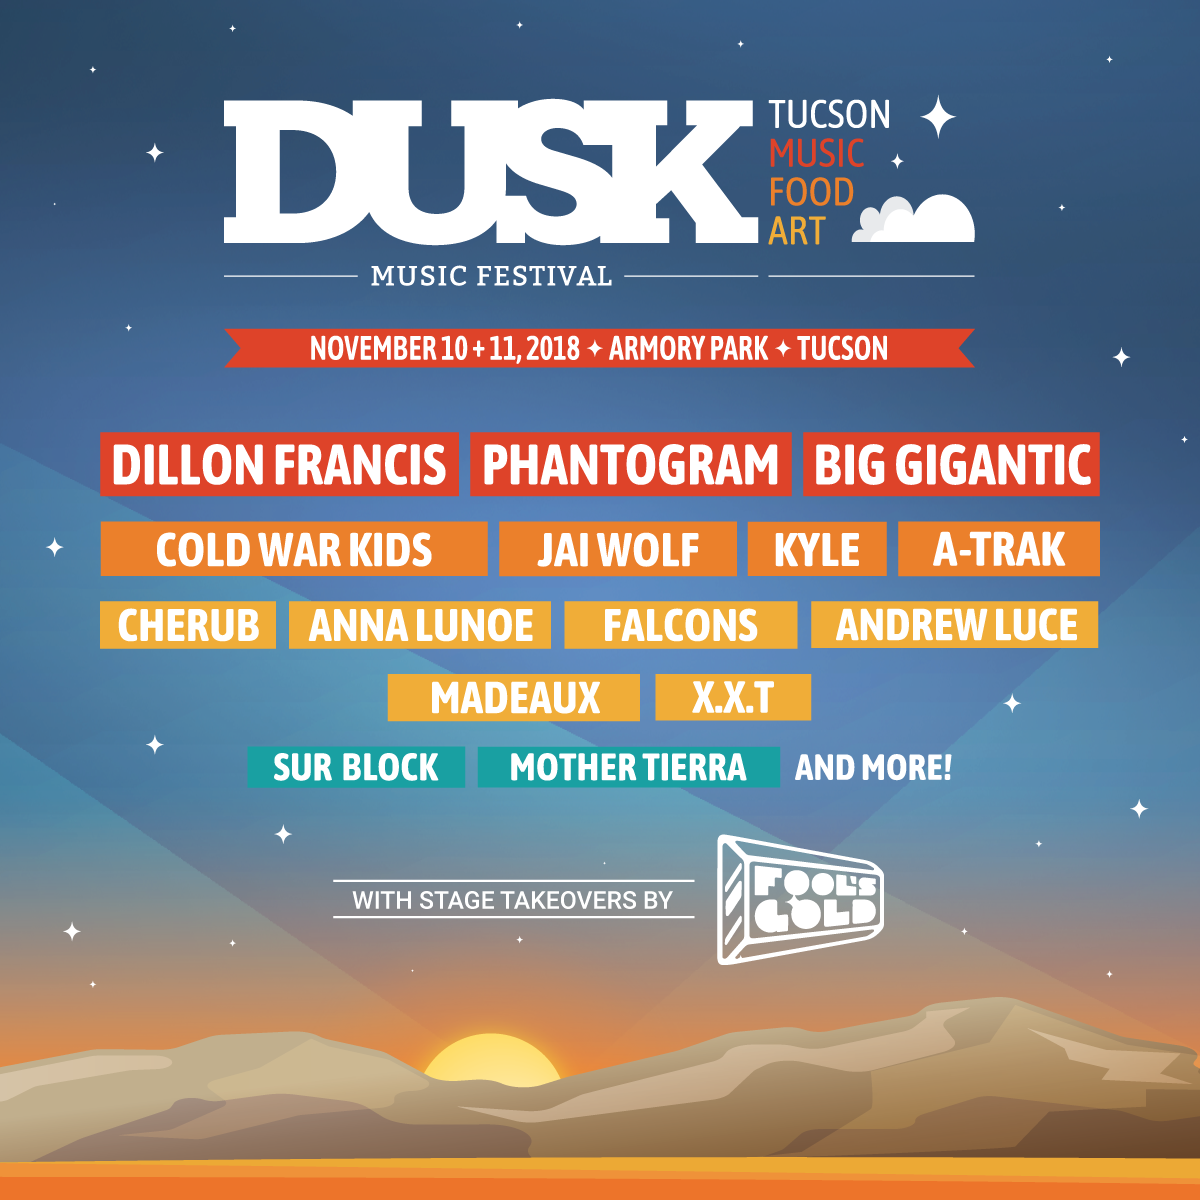 DUSK Music Festival Announces 2018 Lineup Featuring Dillon Francis, Phantogram, Big Gigantic and Cold War Kids